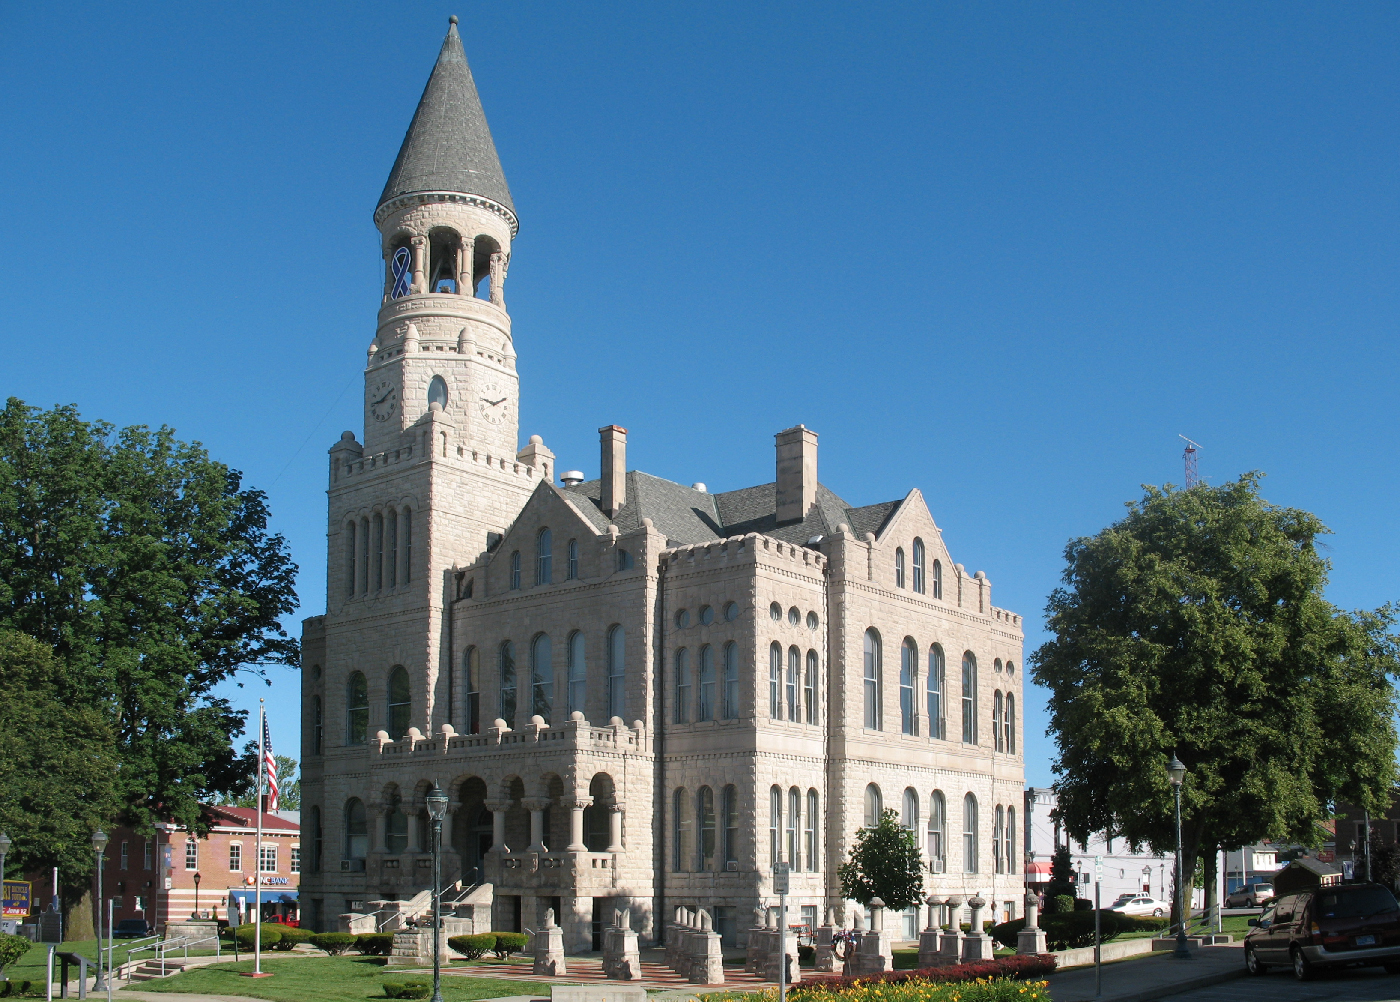 Washington County Courthouse, Salem